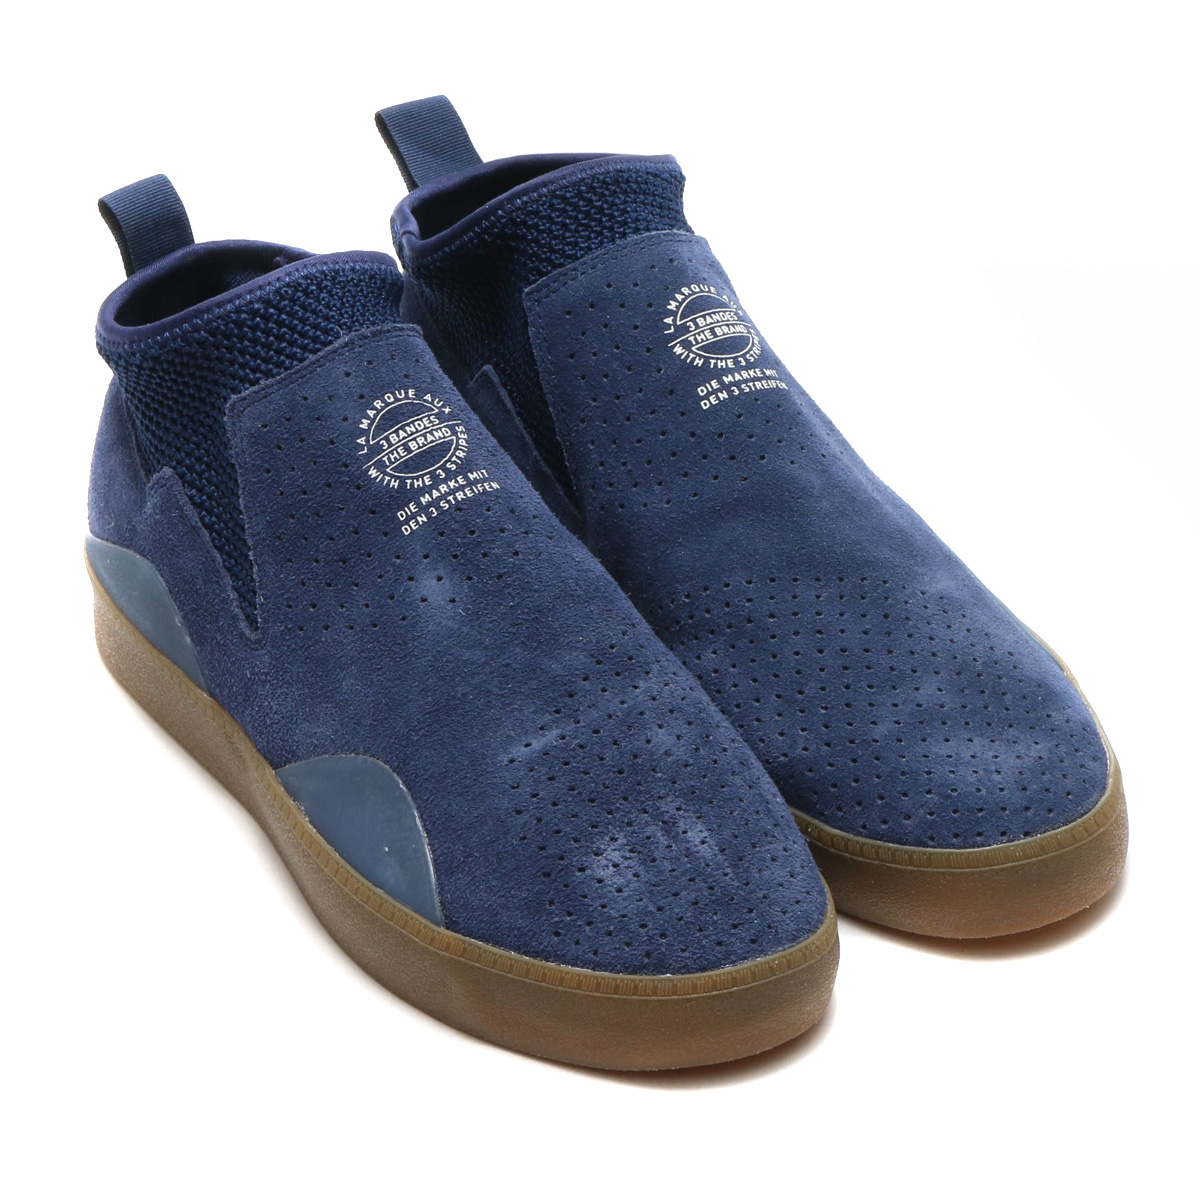 buy popular fde62 89143 Through the device by riders of the Adidas skateboarding, a little with the  classic vulcanized の design comes up. I finish one piece of good-quality  suede ...